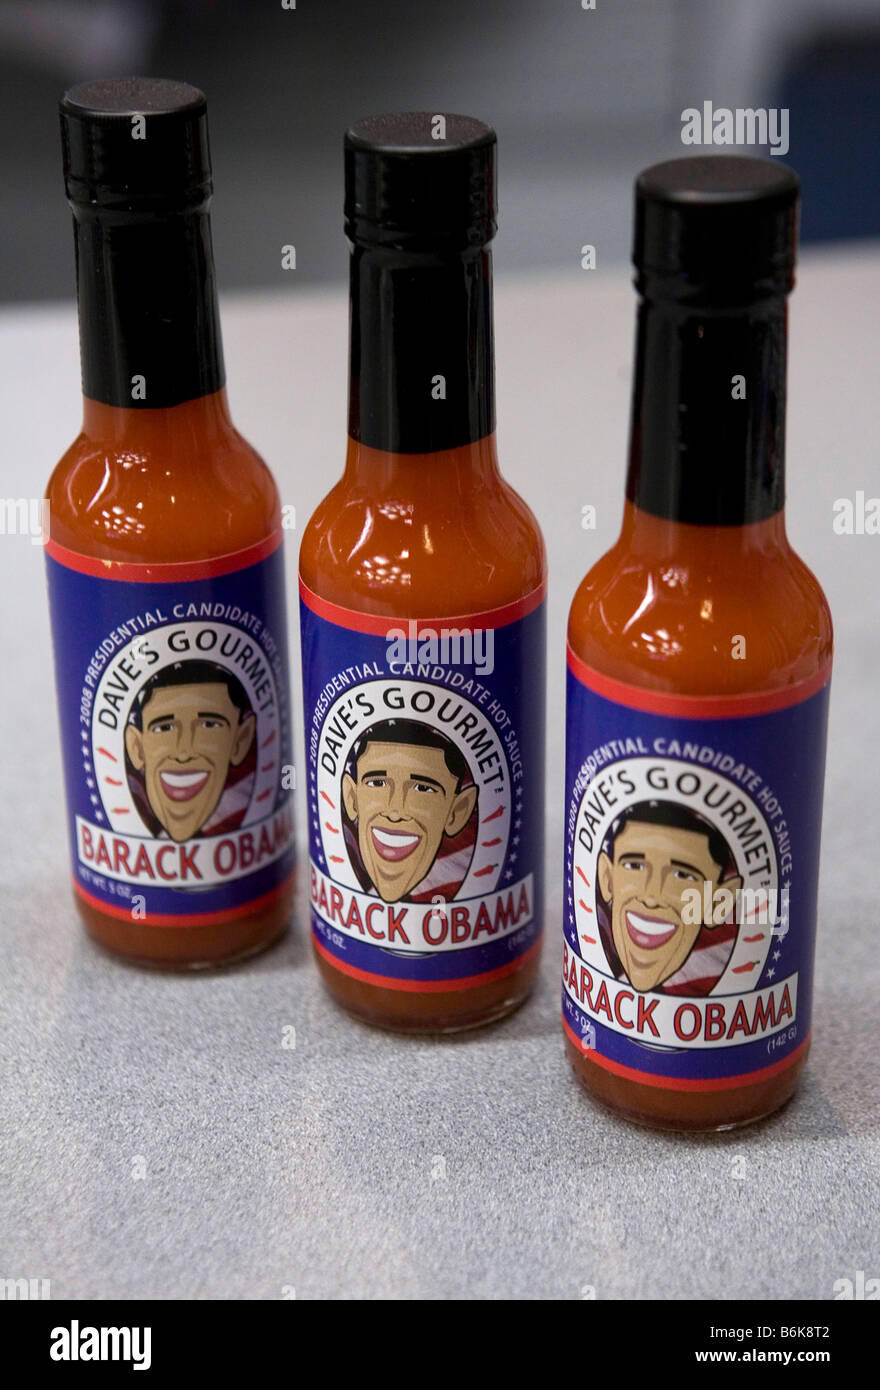 14 December 2008 Washington D C President Elect Barack Obama merchandise - Stock Image